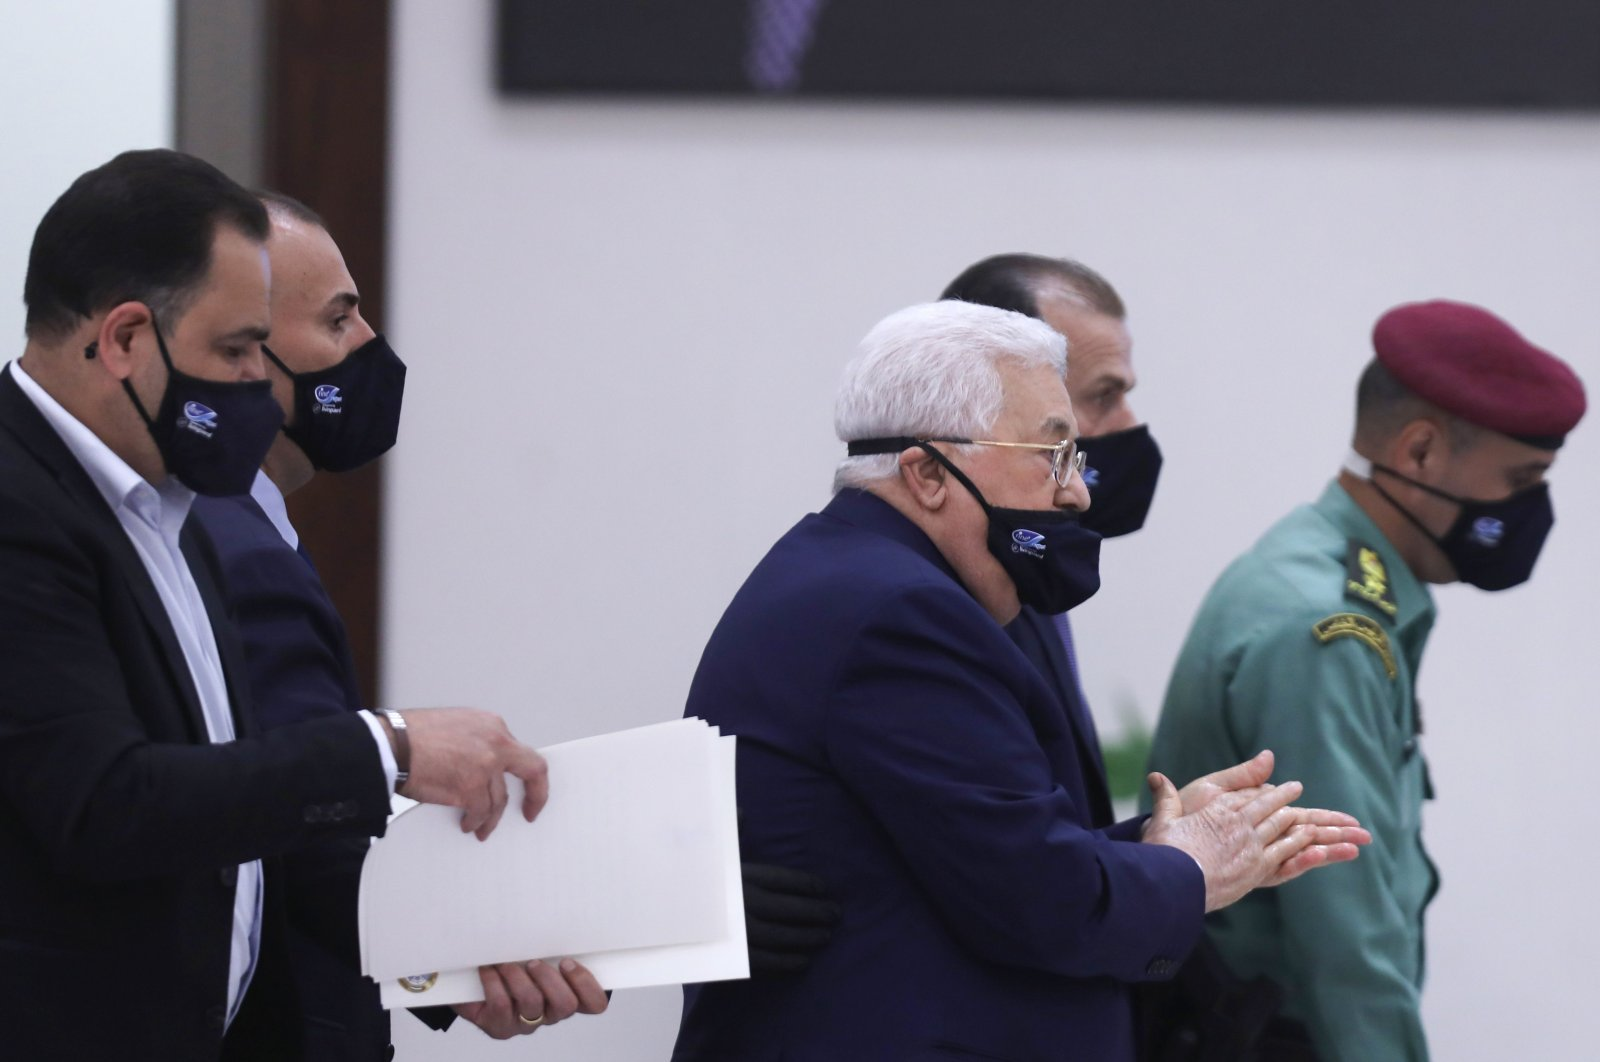 Palestinian President Mahmoud Abbas (C) leaves while wearing a protective mask due to the COVID-19 pandemic following the Palestinian leadership meeting at his headquarters in the West Bank city of Ramallah, Palestine, May 19, 2020. (AFP Photo)